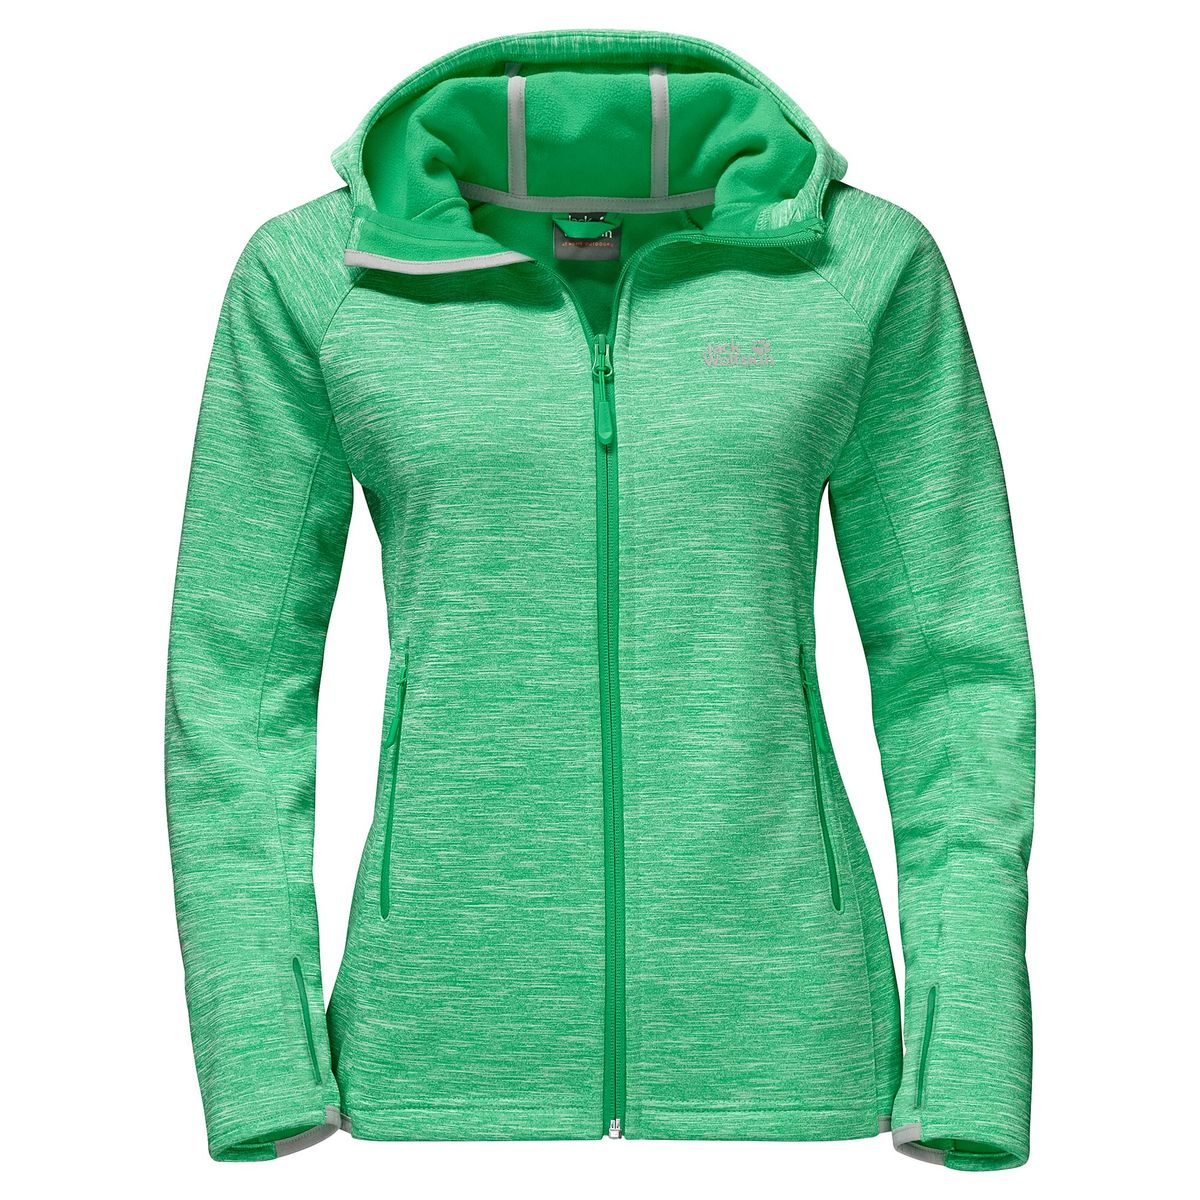 LA CUMBRE TRAIL JACKET Damen Fleecejacke